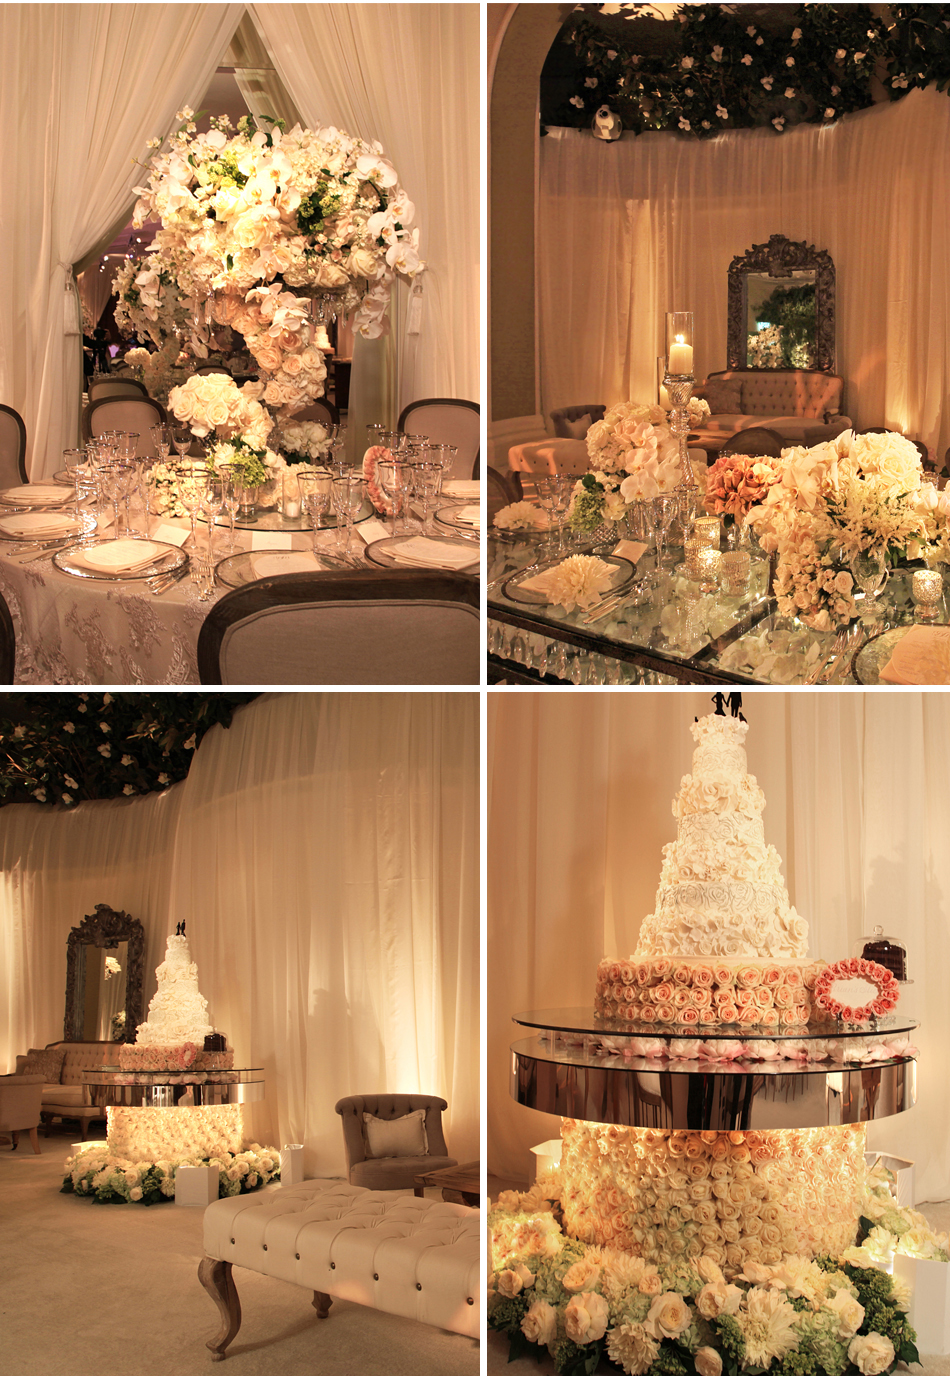 internationaleventcompany.com | International Event Company Los Angeles Wedding Planner and Designer | Weddings at The Beverly Hills Hotel | Luxury Event Planners in Southern California _ (2).jpg